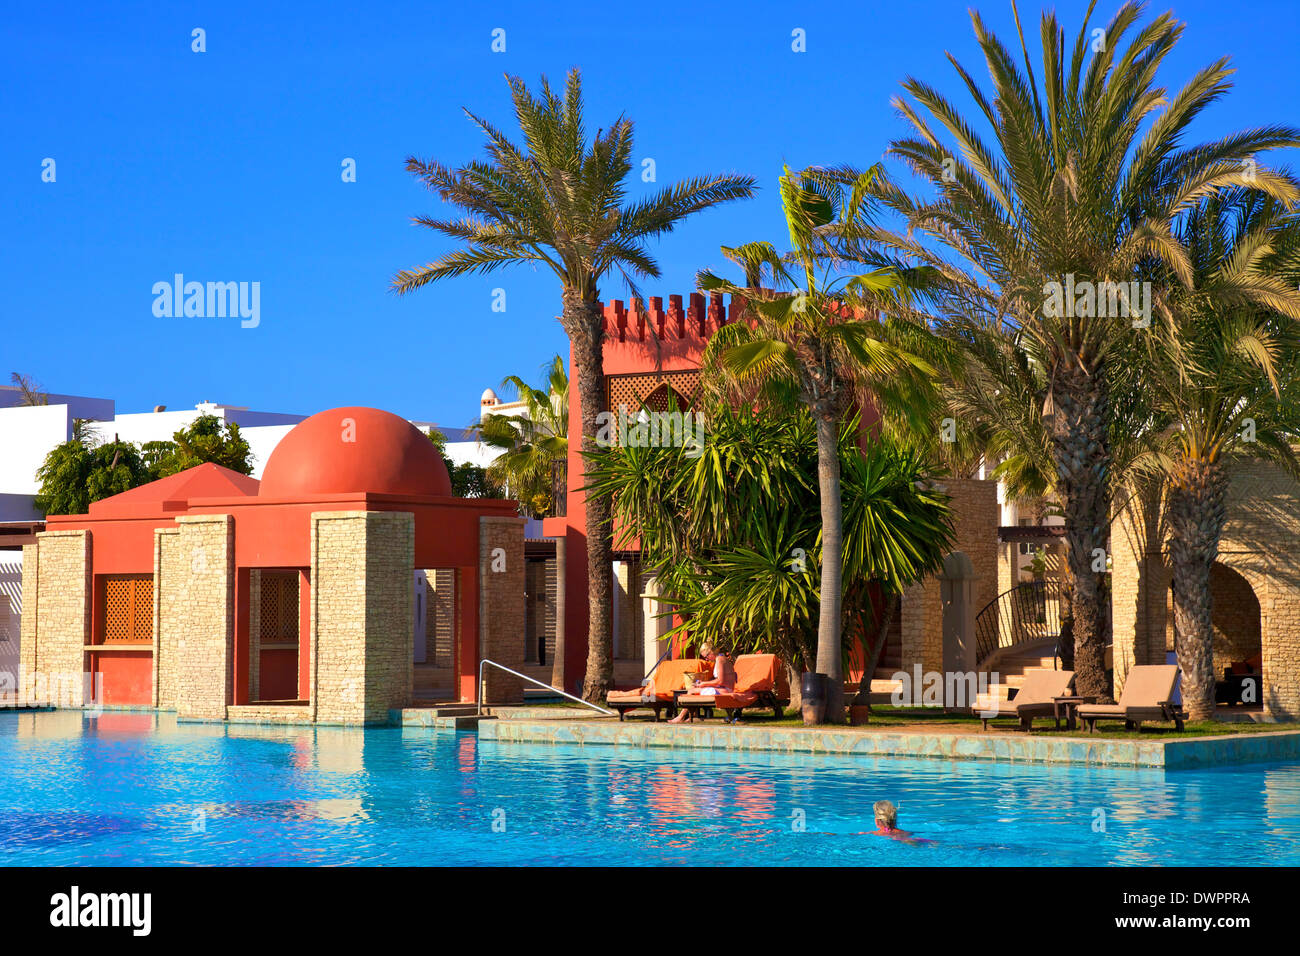 Morocco: North Africa Resorts